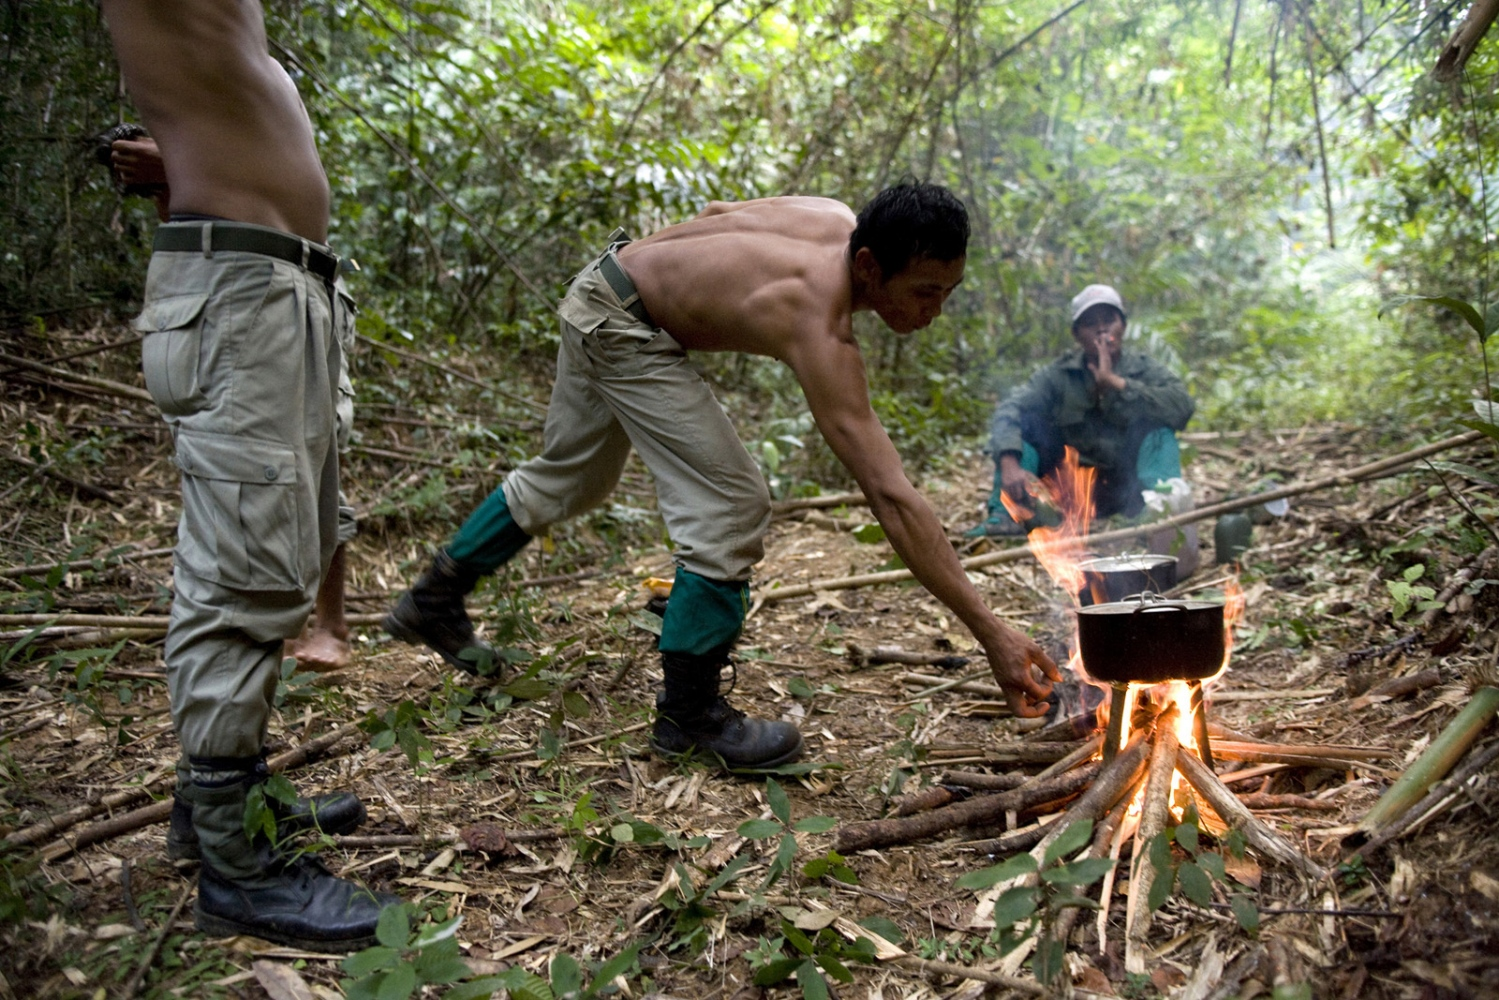 Rangers make a camp whilst on patrol in the forest. The forest rangers are employed by the Ministry of Environment but sponsored by Flora and Fauna International who pays them 75% of their salary and provides training and accommodation. They undertake regular patrols in to the Samkos Wildlife Sancturary which is part of the Cardamom Mountains Nature Reserve looking for illegal activites such as logging, poaching, land encroachment and the production of the illegal substance sassafras oil.